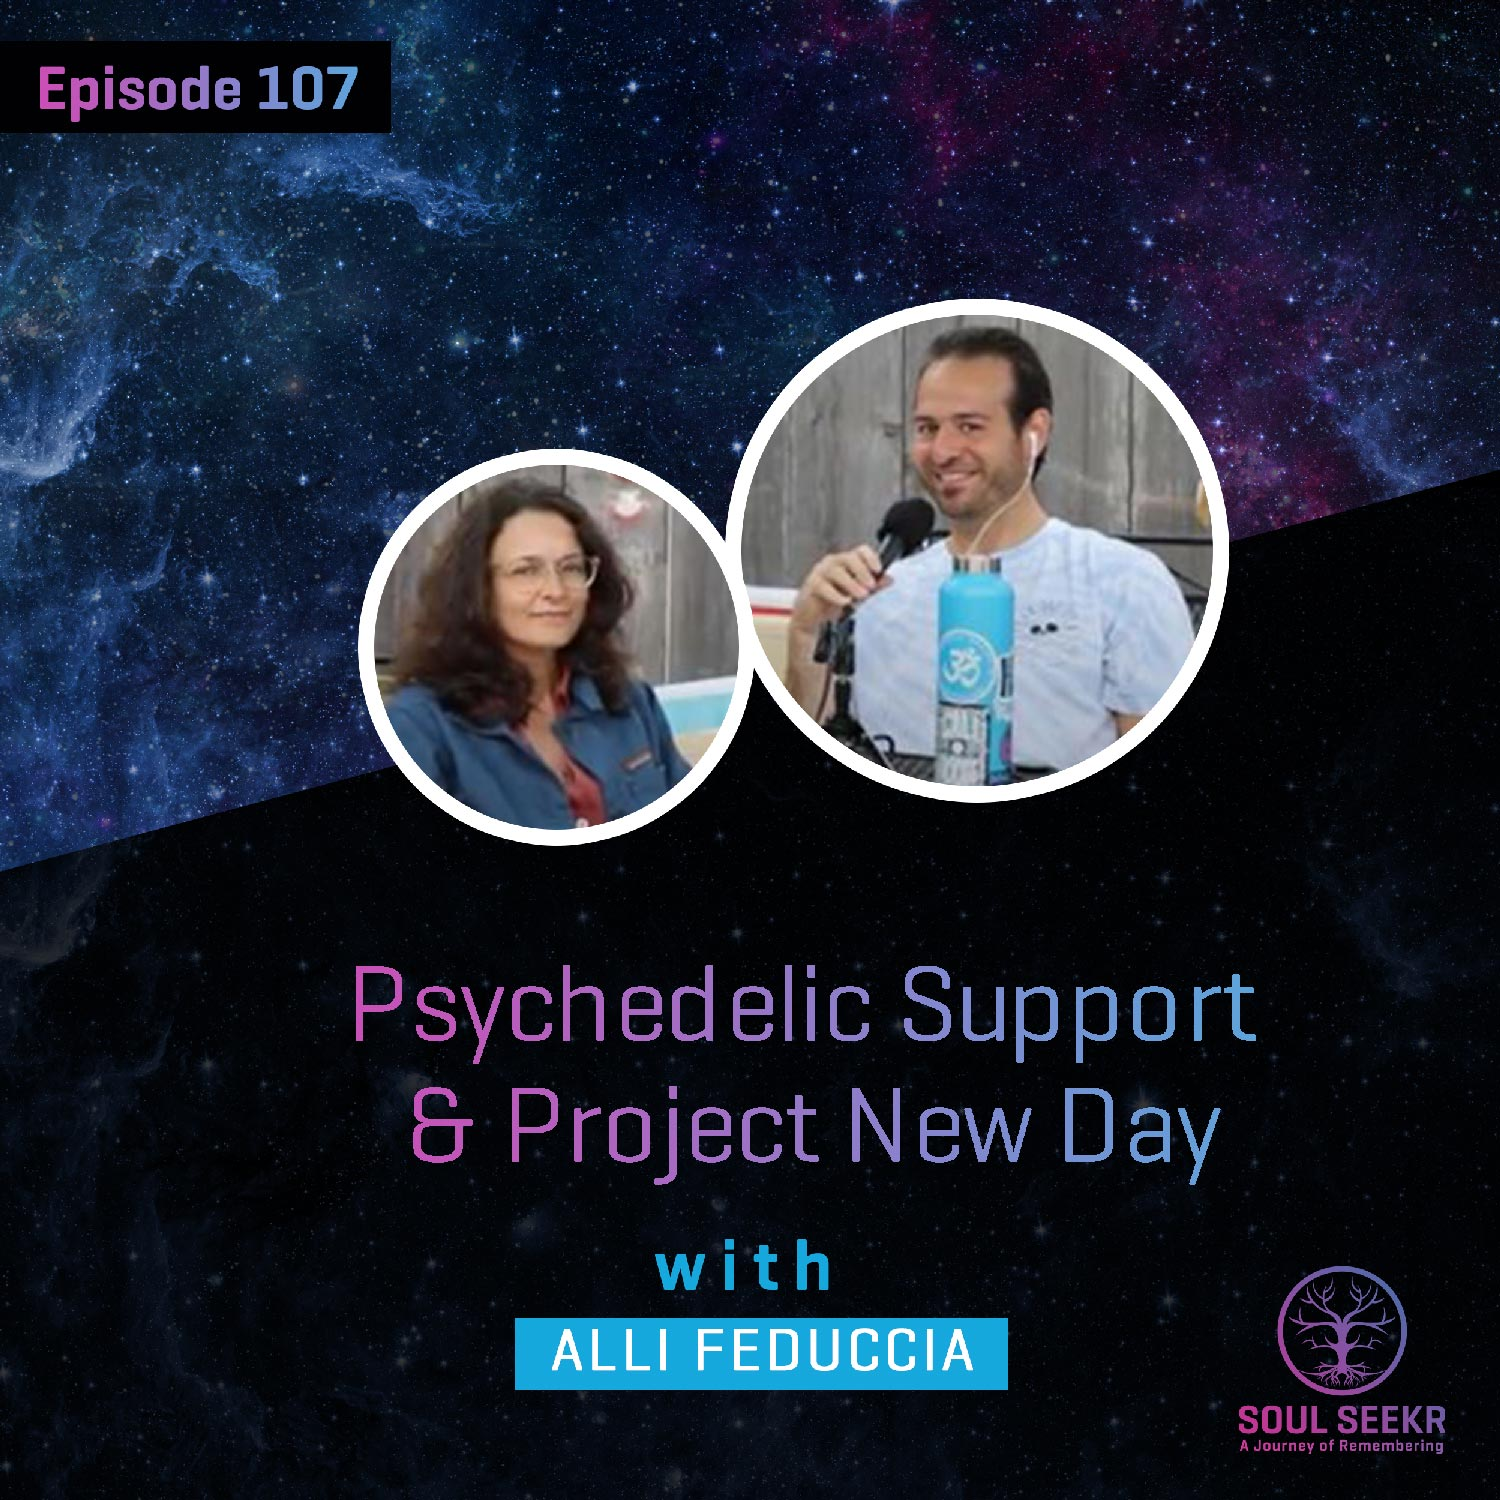 #Ep 107: Psychedelic Support & Project New Day with Alli Feduccia